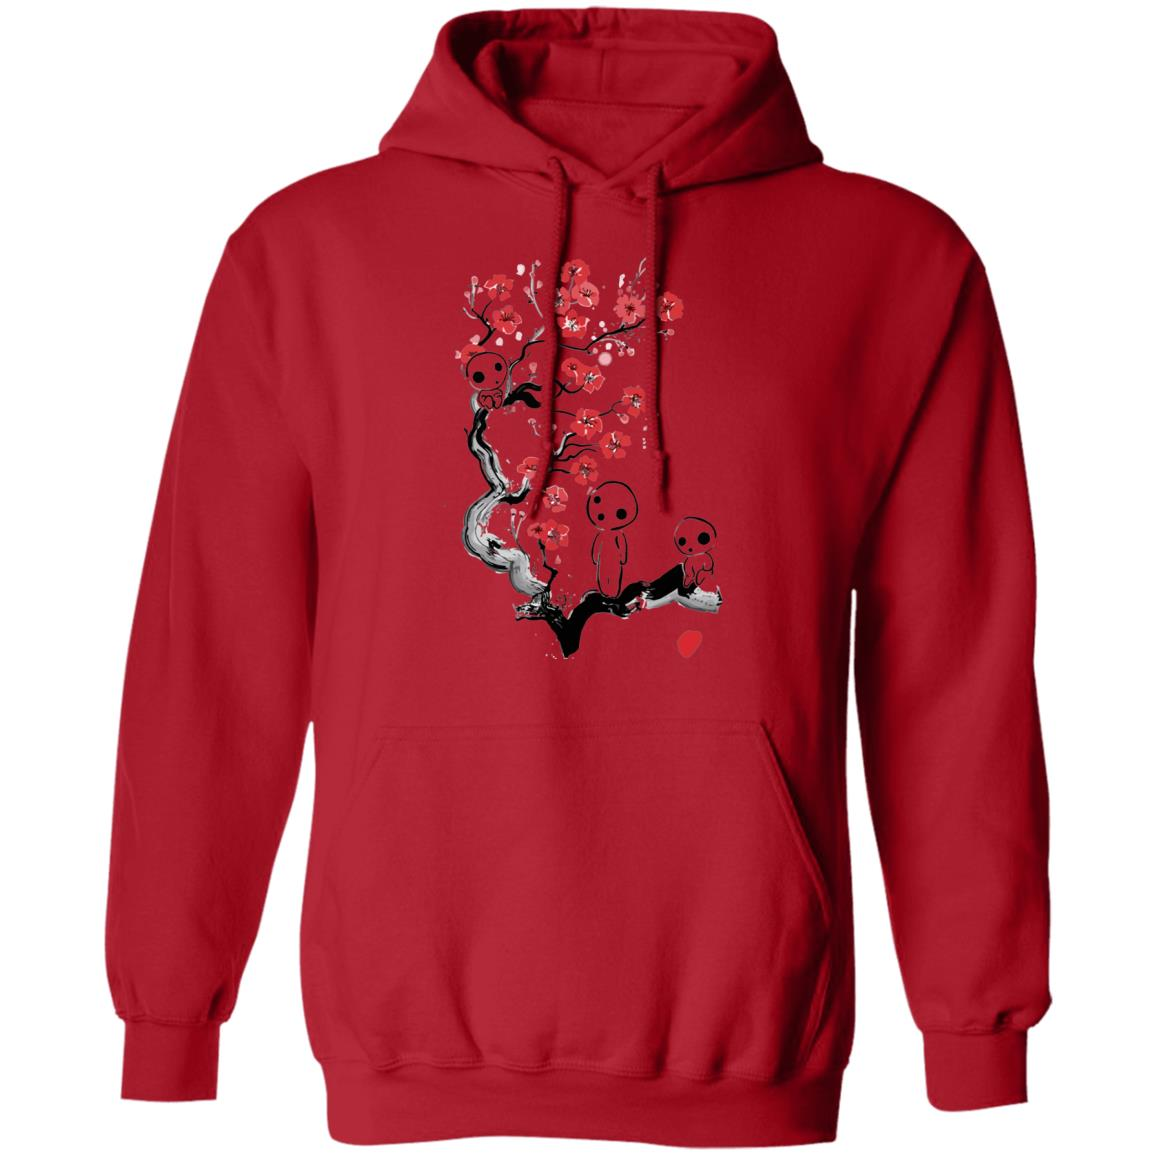 Princess Mononoke – Tree Spirits on the Cherry Blossom Hoodie Unisex